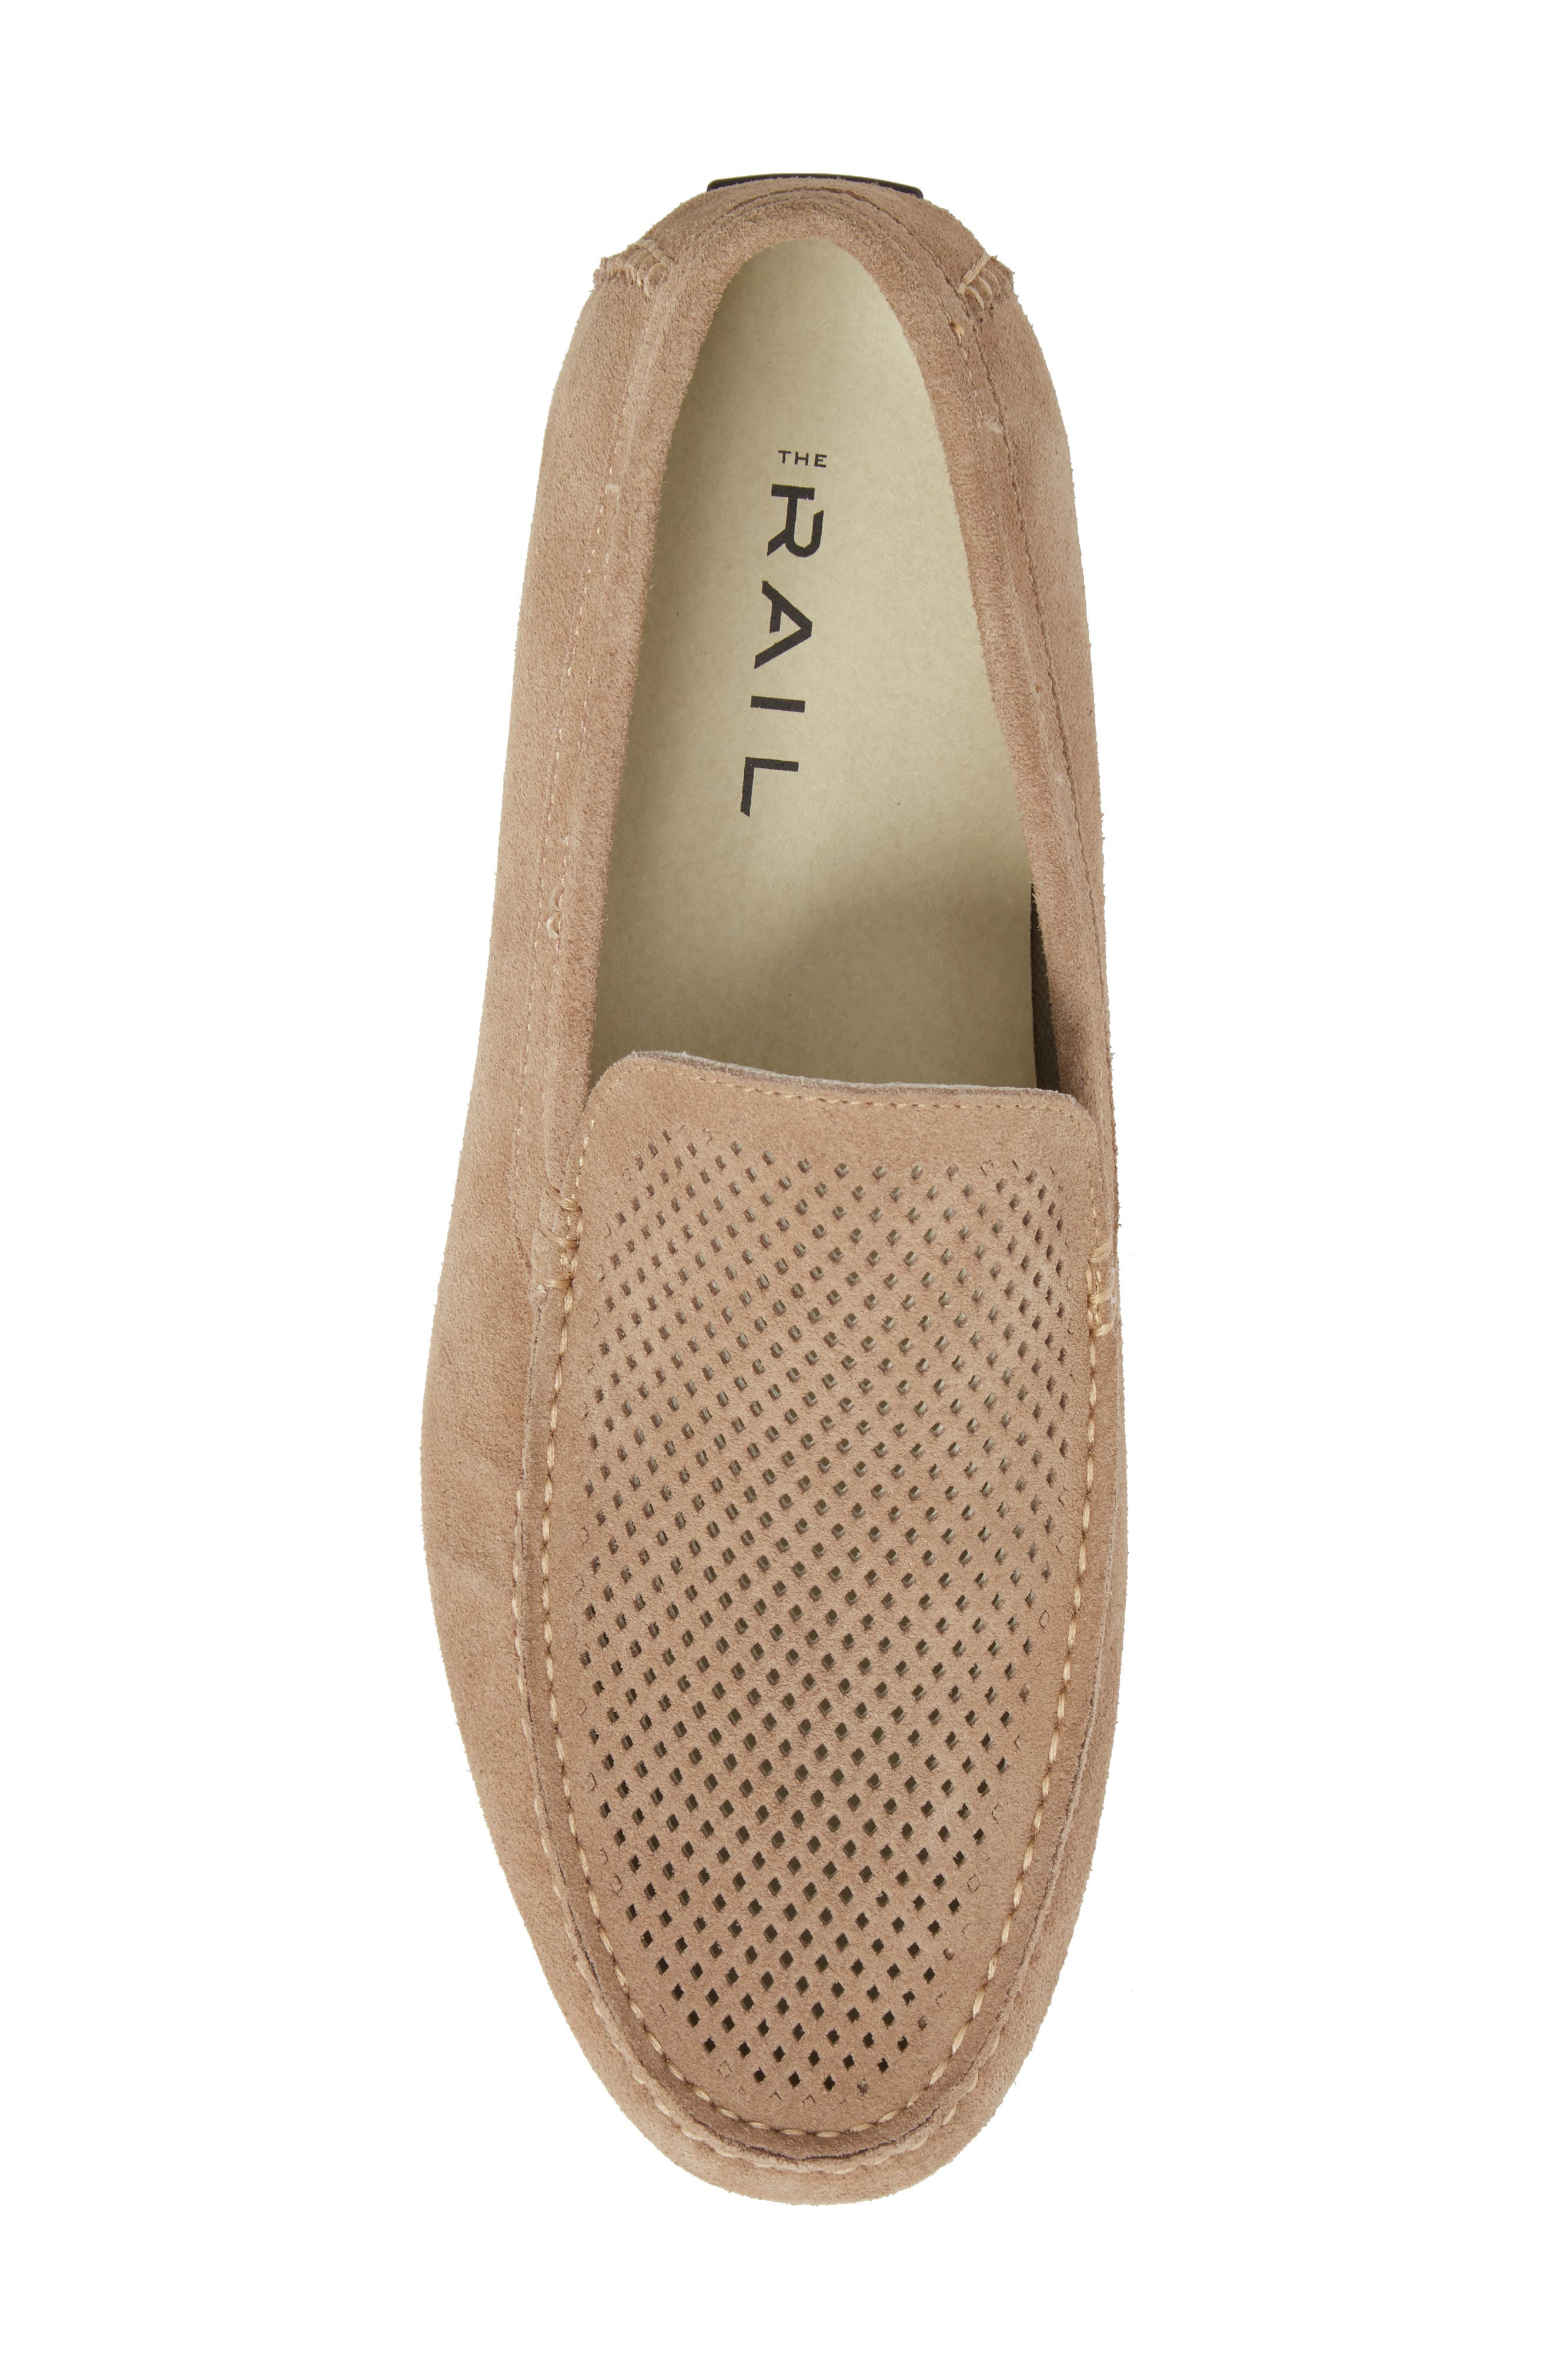 Scottsdale Perforated Driving Moccasin,                             Alternate thumbnail 5, color,                             Tan Suede